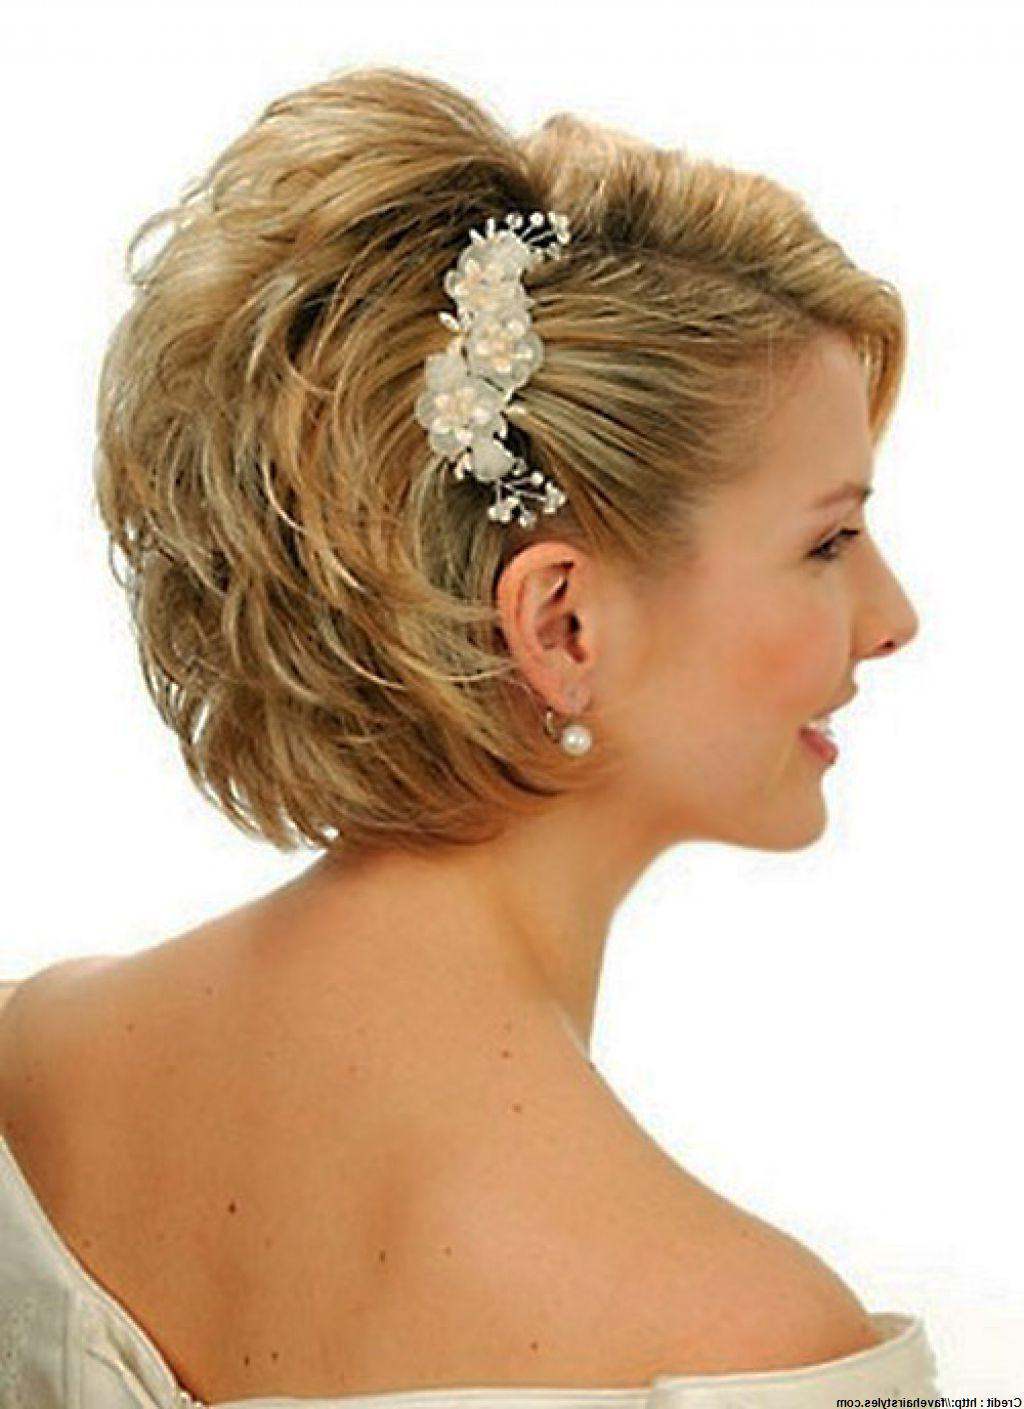 Tips To Get Elegant Wedding Hairstyles For Short Hair – Fast Think Site! For Brides Hairstyles For Short Hair (View 7 of 25)